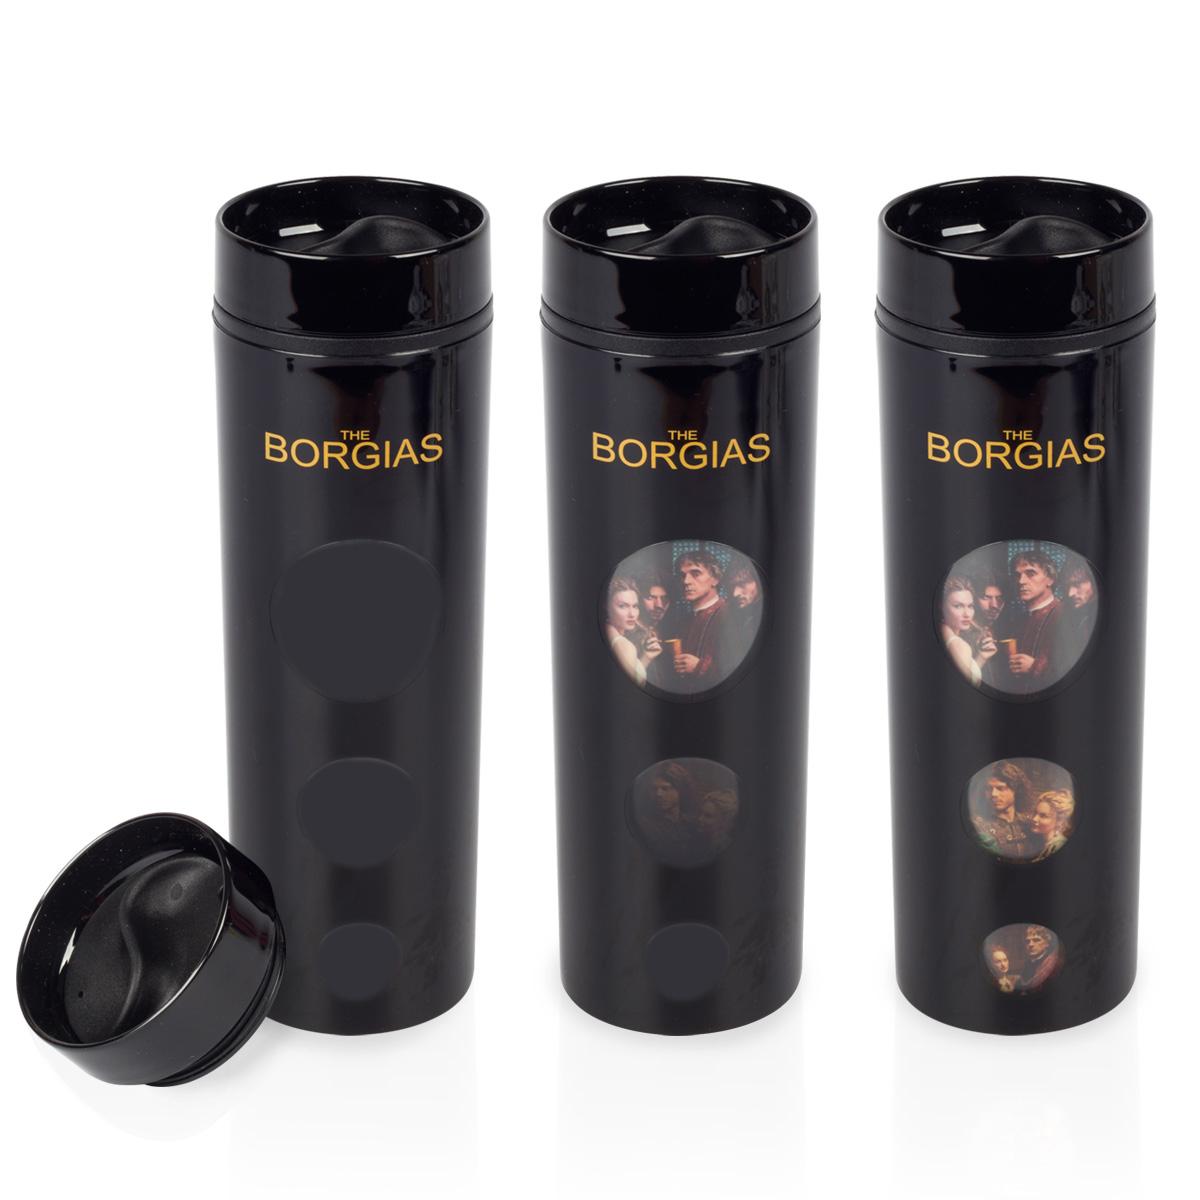 The Borgias Heat Sensitive Tumbler